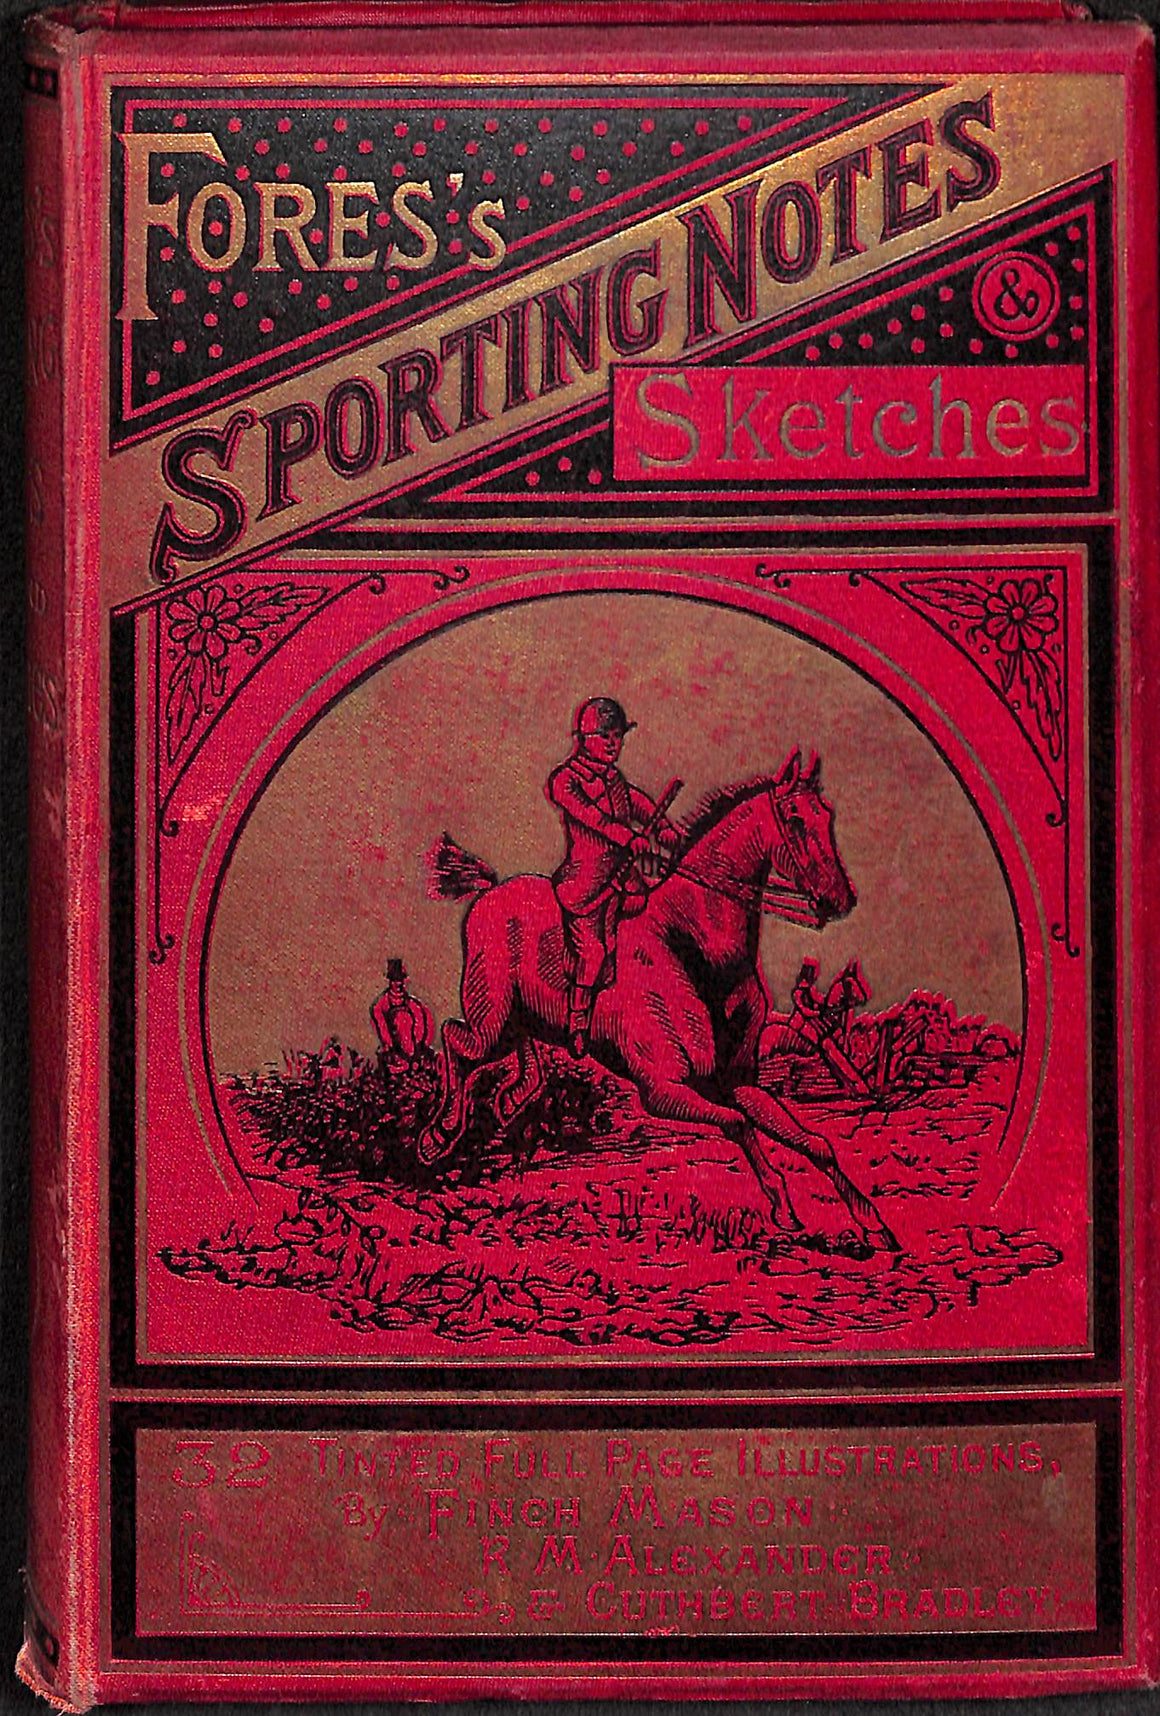 """Fores's Sporting Notes & Sketches Vol. III 1886-1887"""